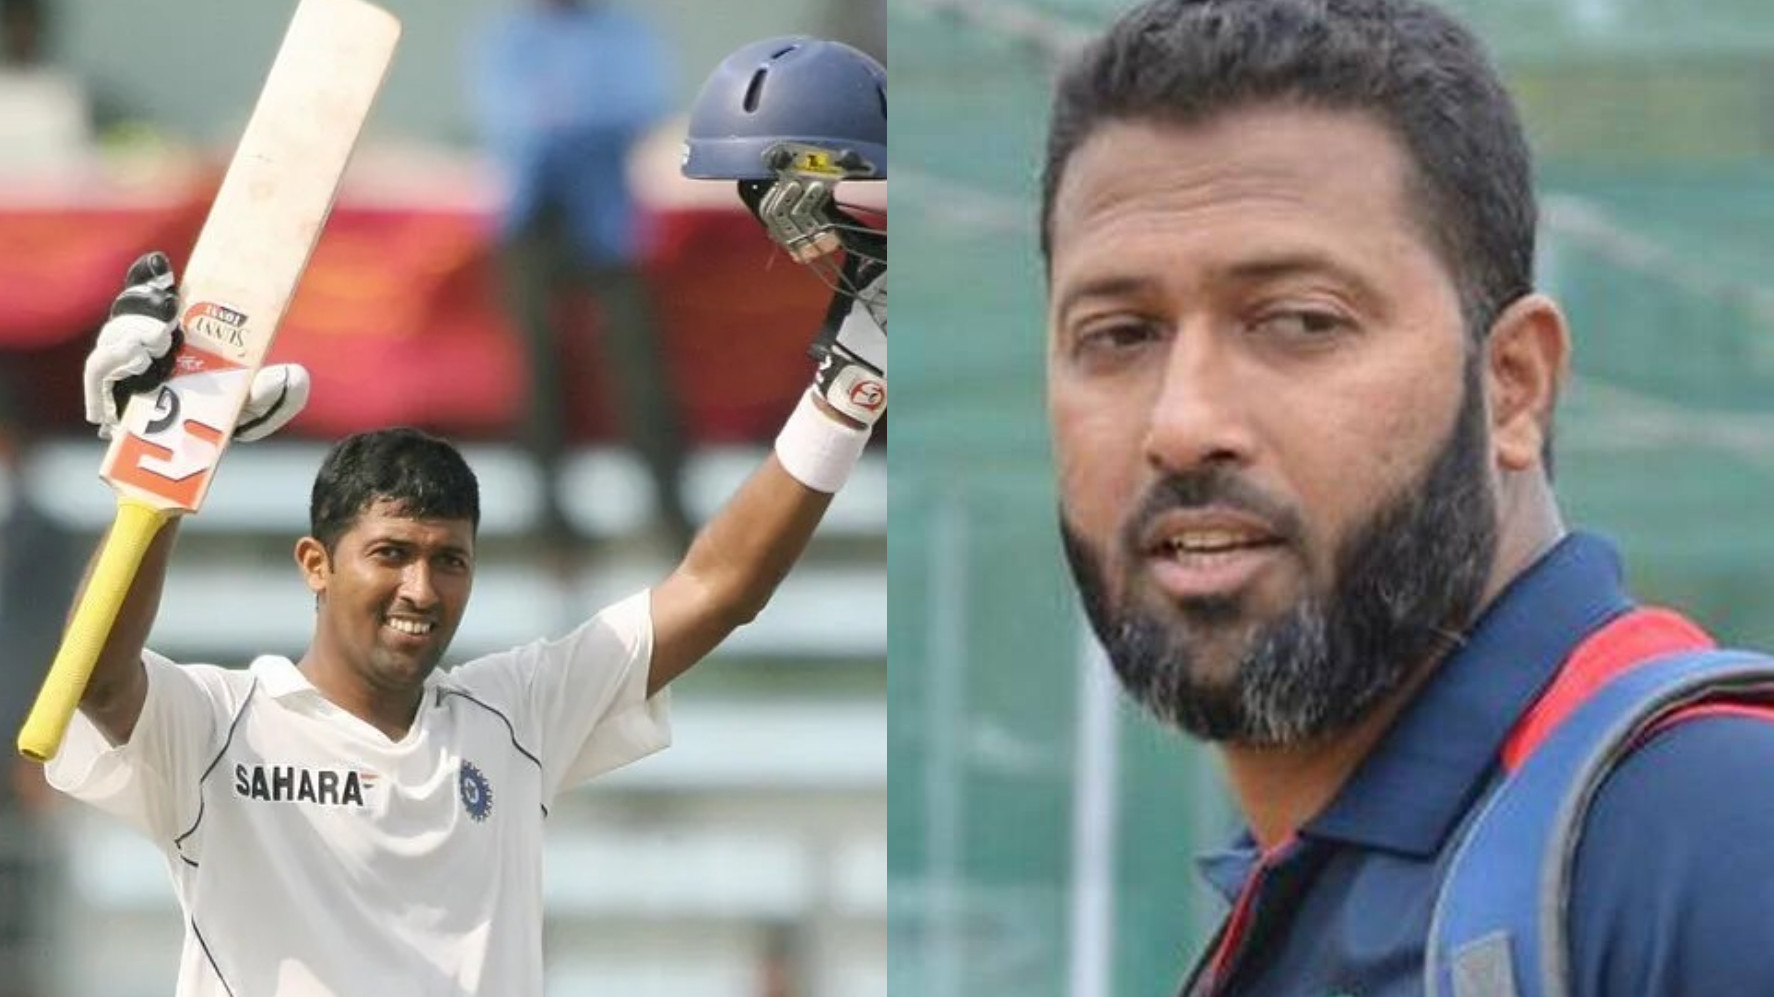 Wasim Jaffer retorts to a fan saying he cheered for the opposition when India played Pakistan